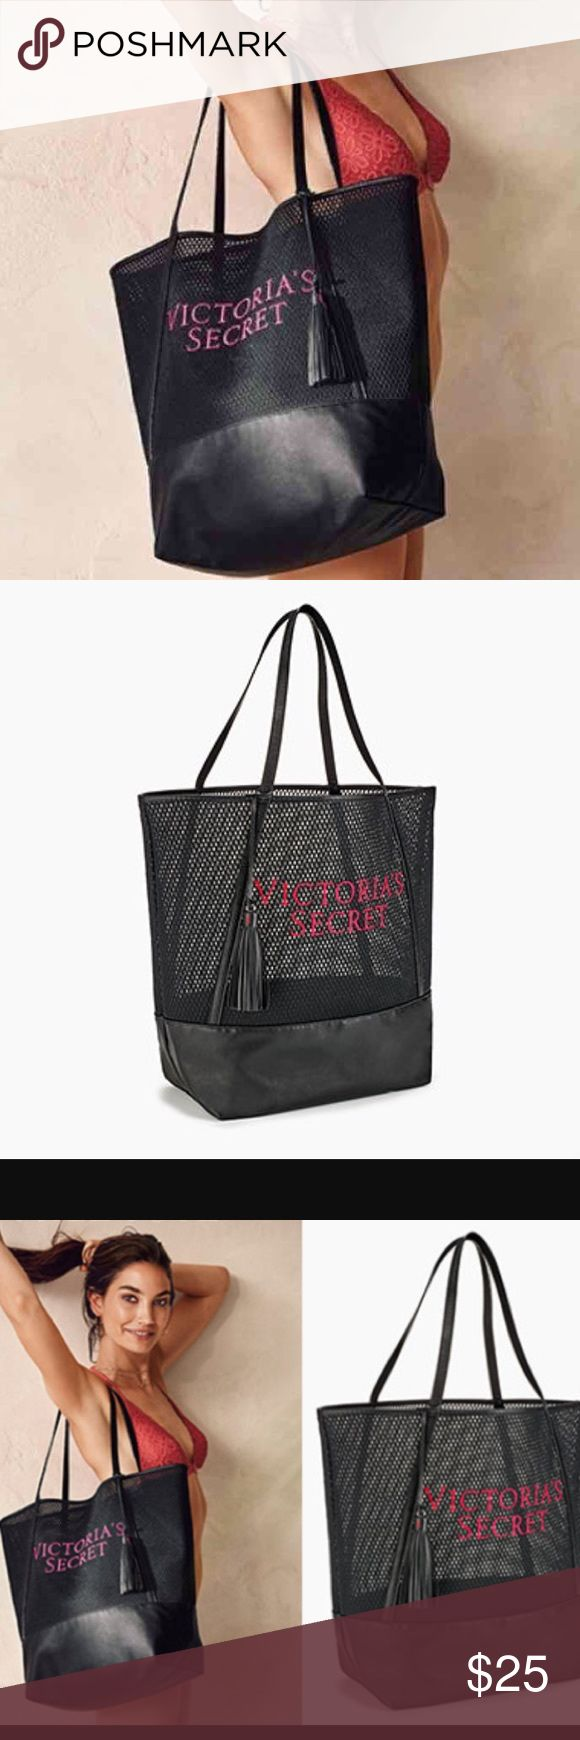 """Victoria's Secret Large Tote Bag Victoria's Secret Large Black Tote Bag with pink graphic stitched on front • New in plastic packaging • 19.5""""x7""""x16 Victoria's Secret Bags"""